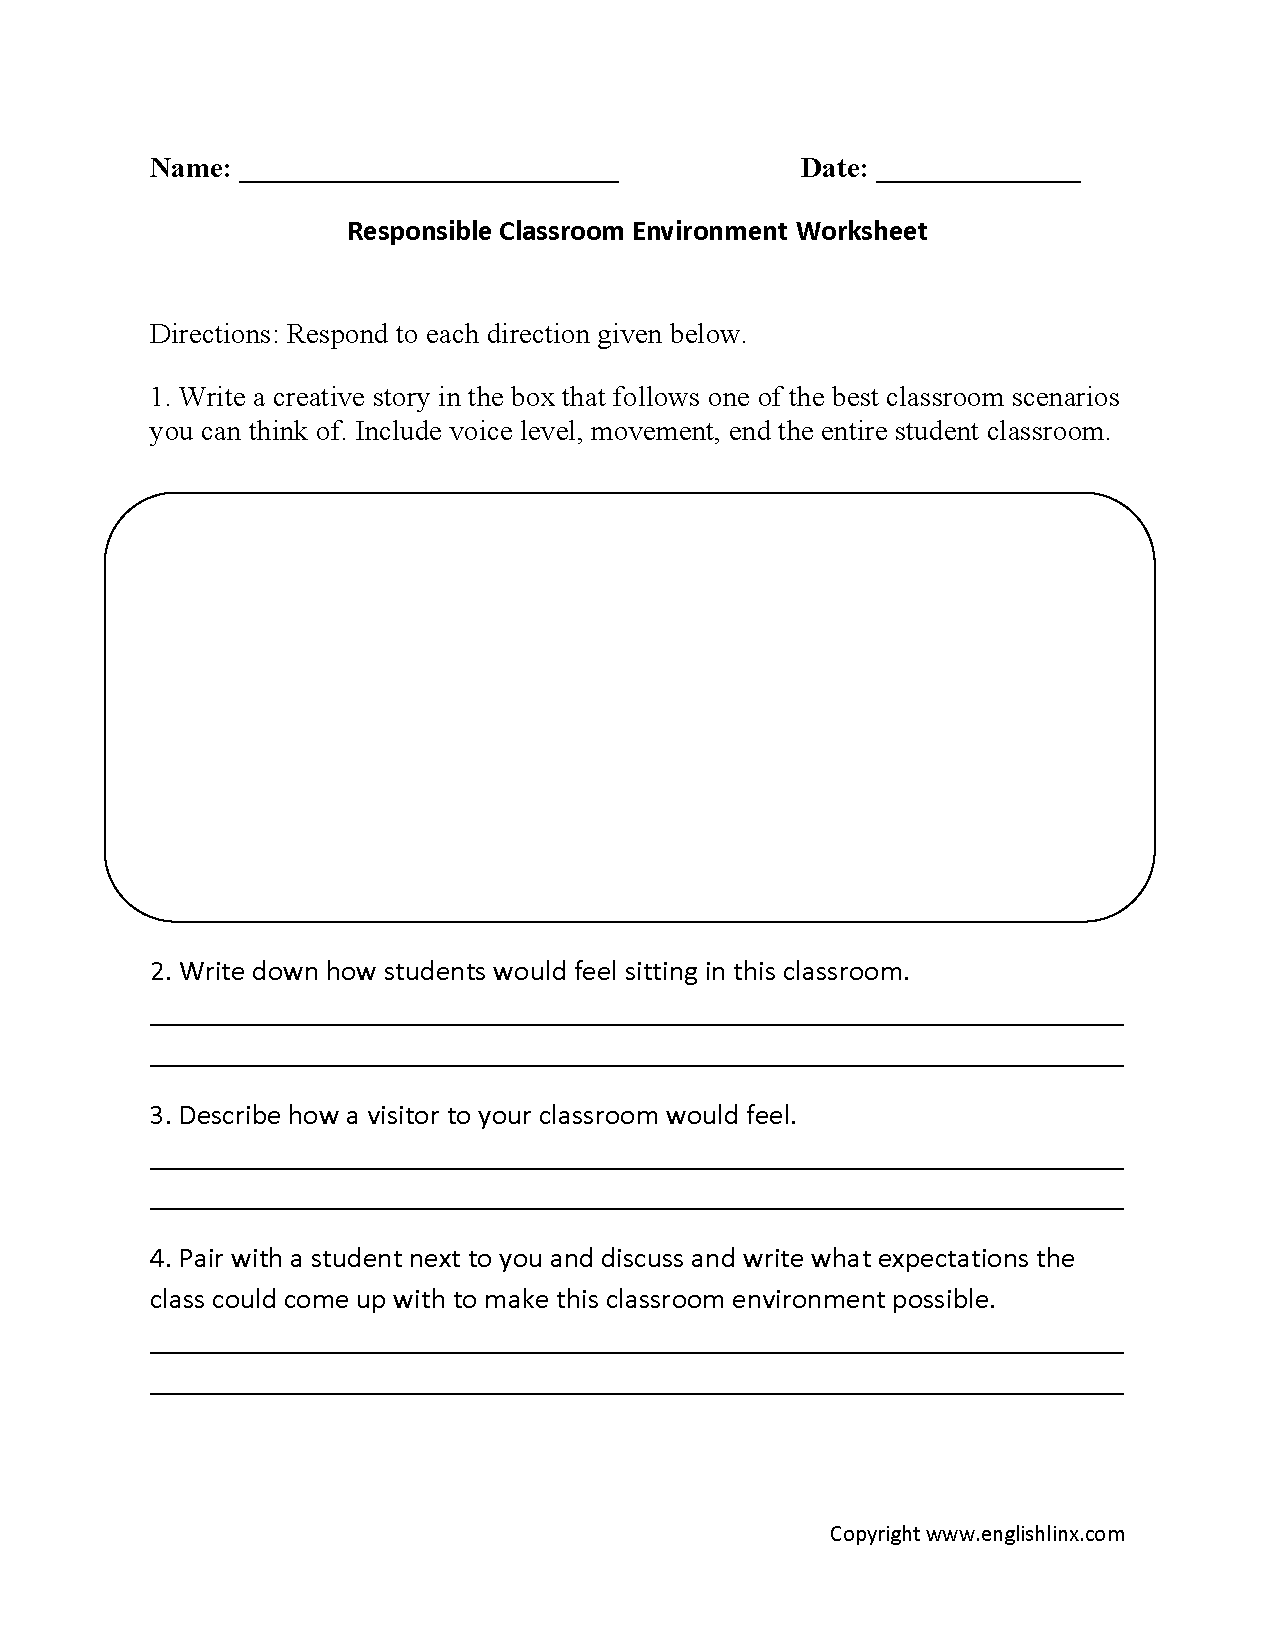 Our Helpers Worksheet Class 1